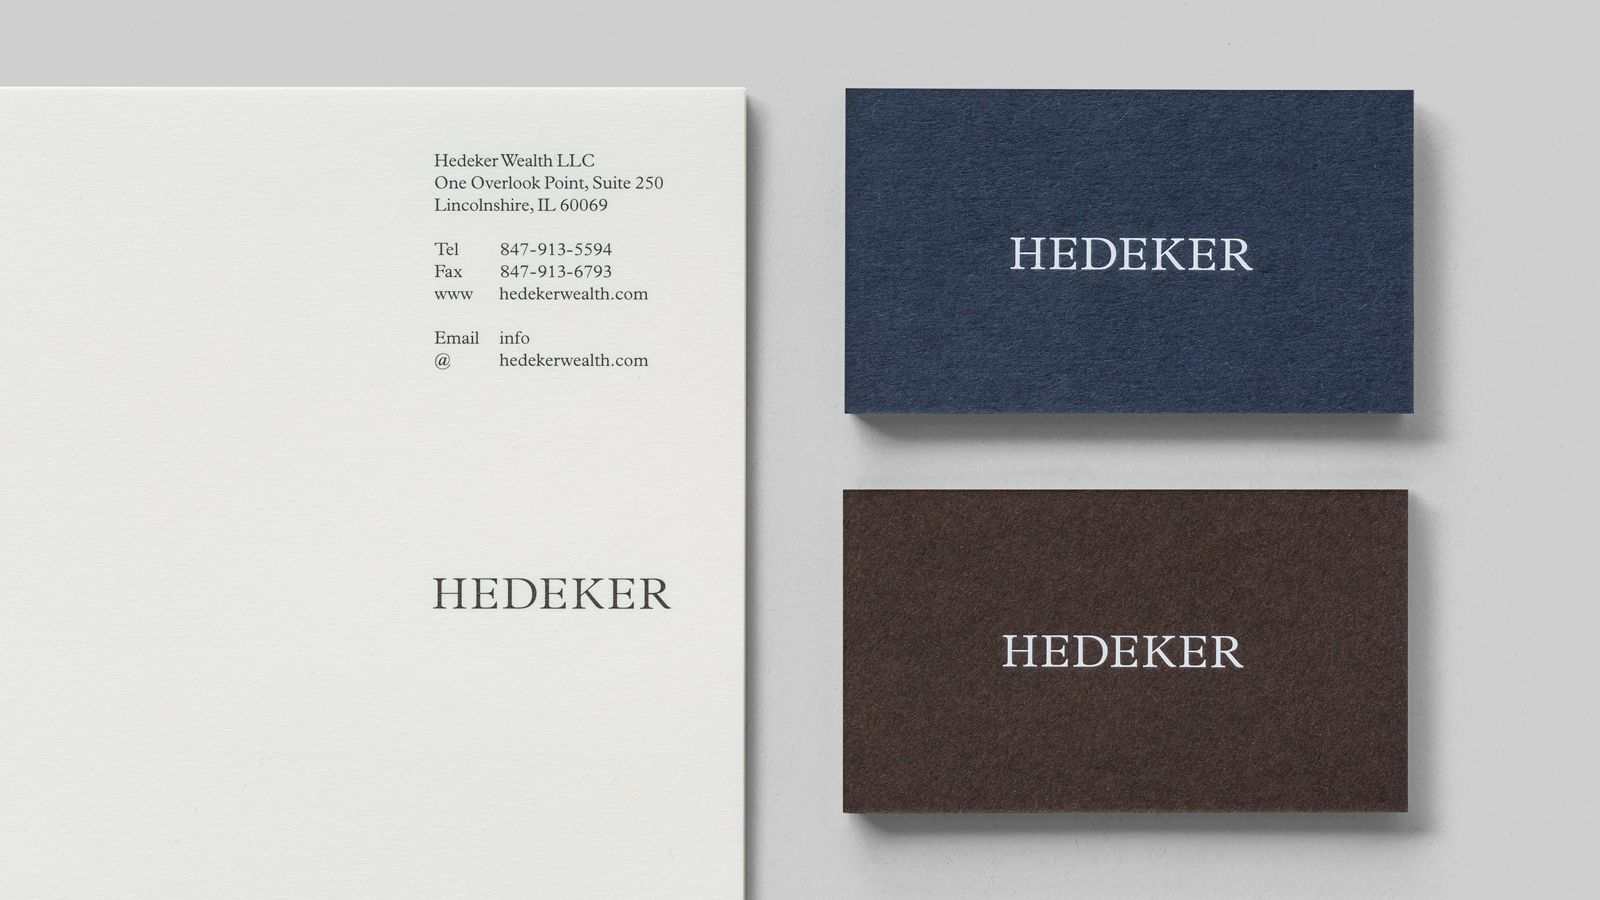 New brand identity for hedeker by socio design bpo business logo headed paper and business cards for illinois based hedeker wealth law by socio design colourmoves